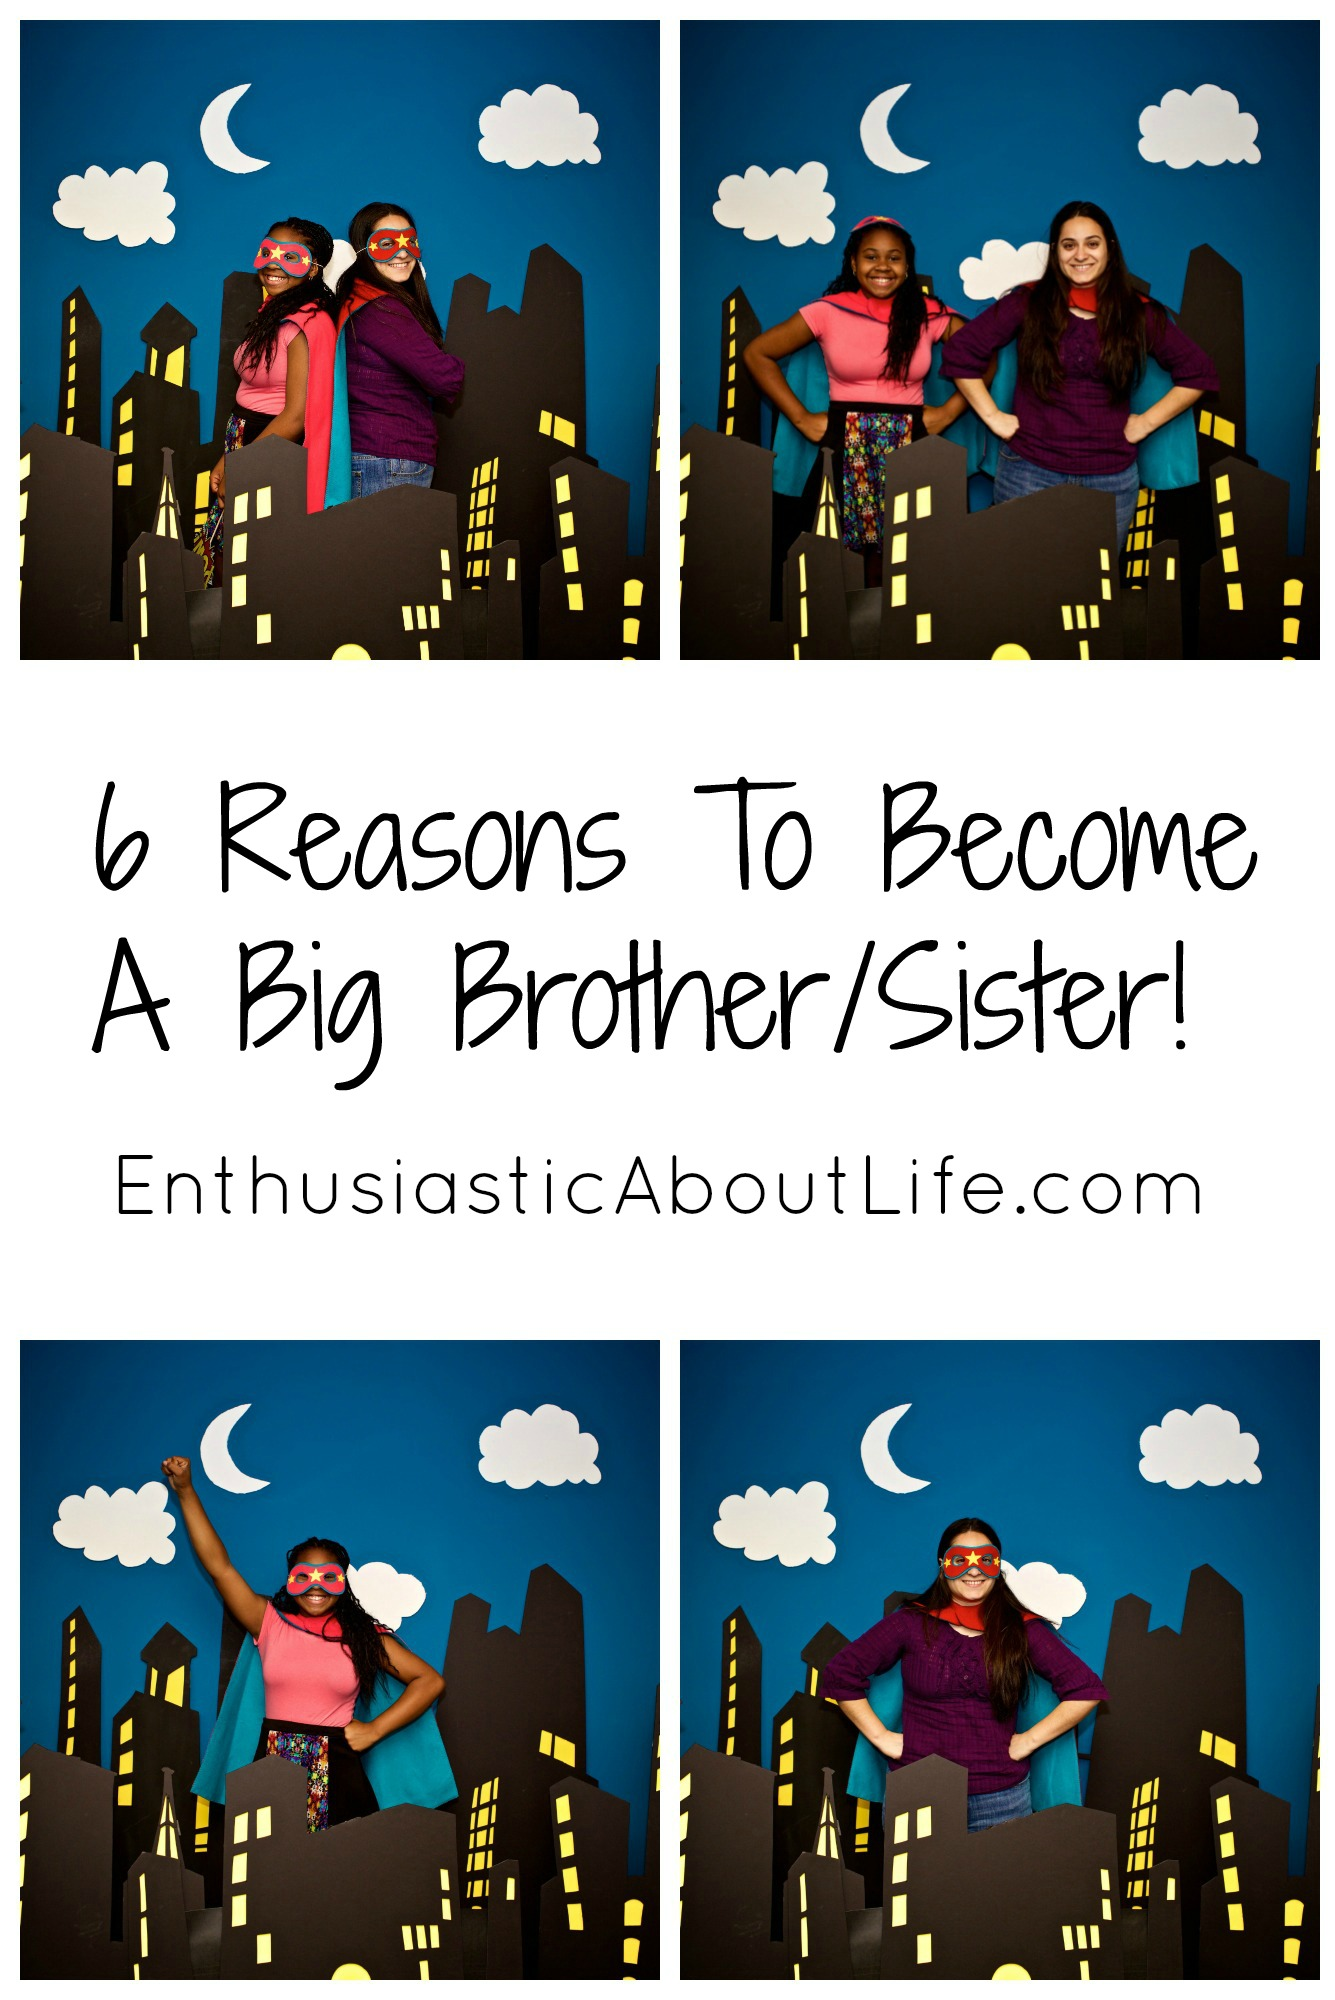 6 Reasons To Become a Big Brother/Sister! | Enthusiastic